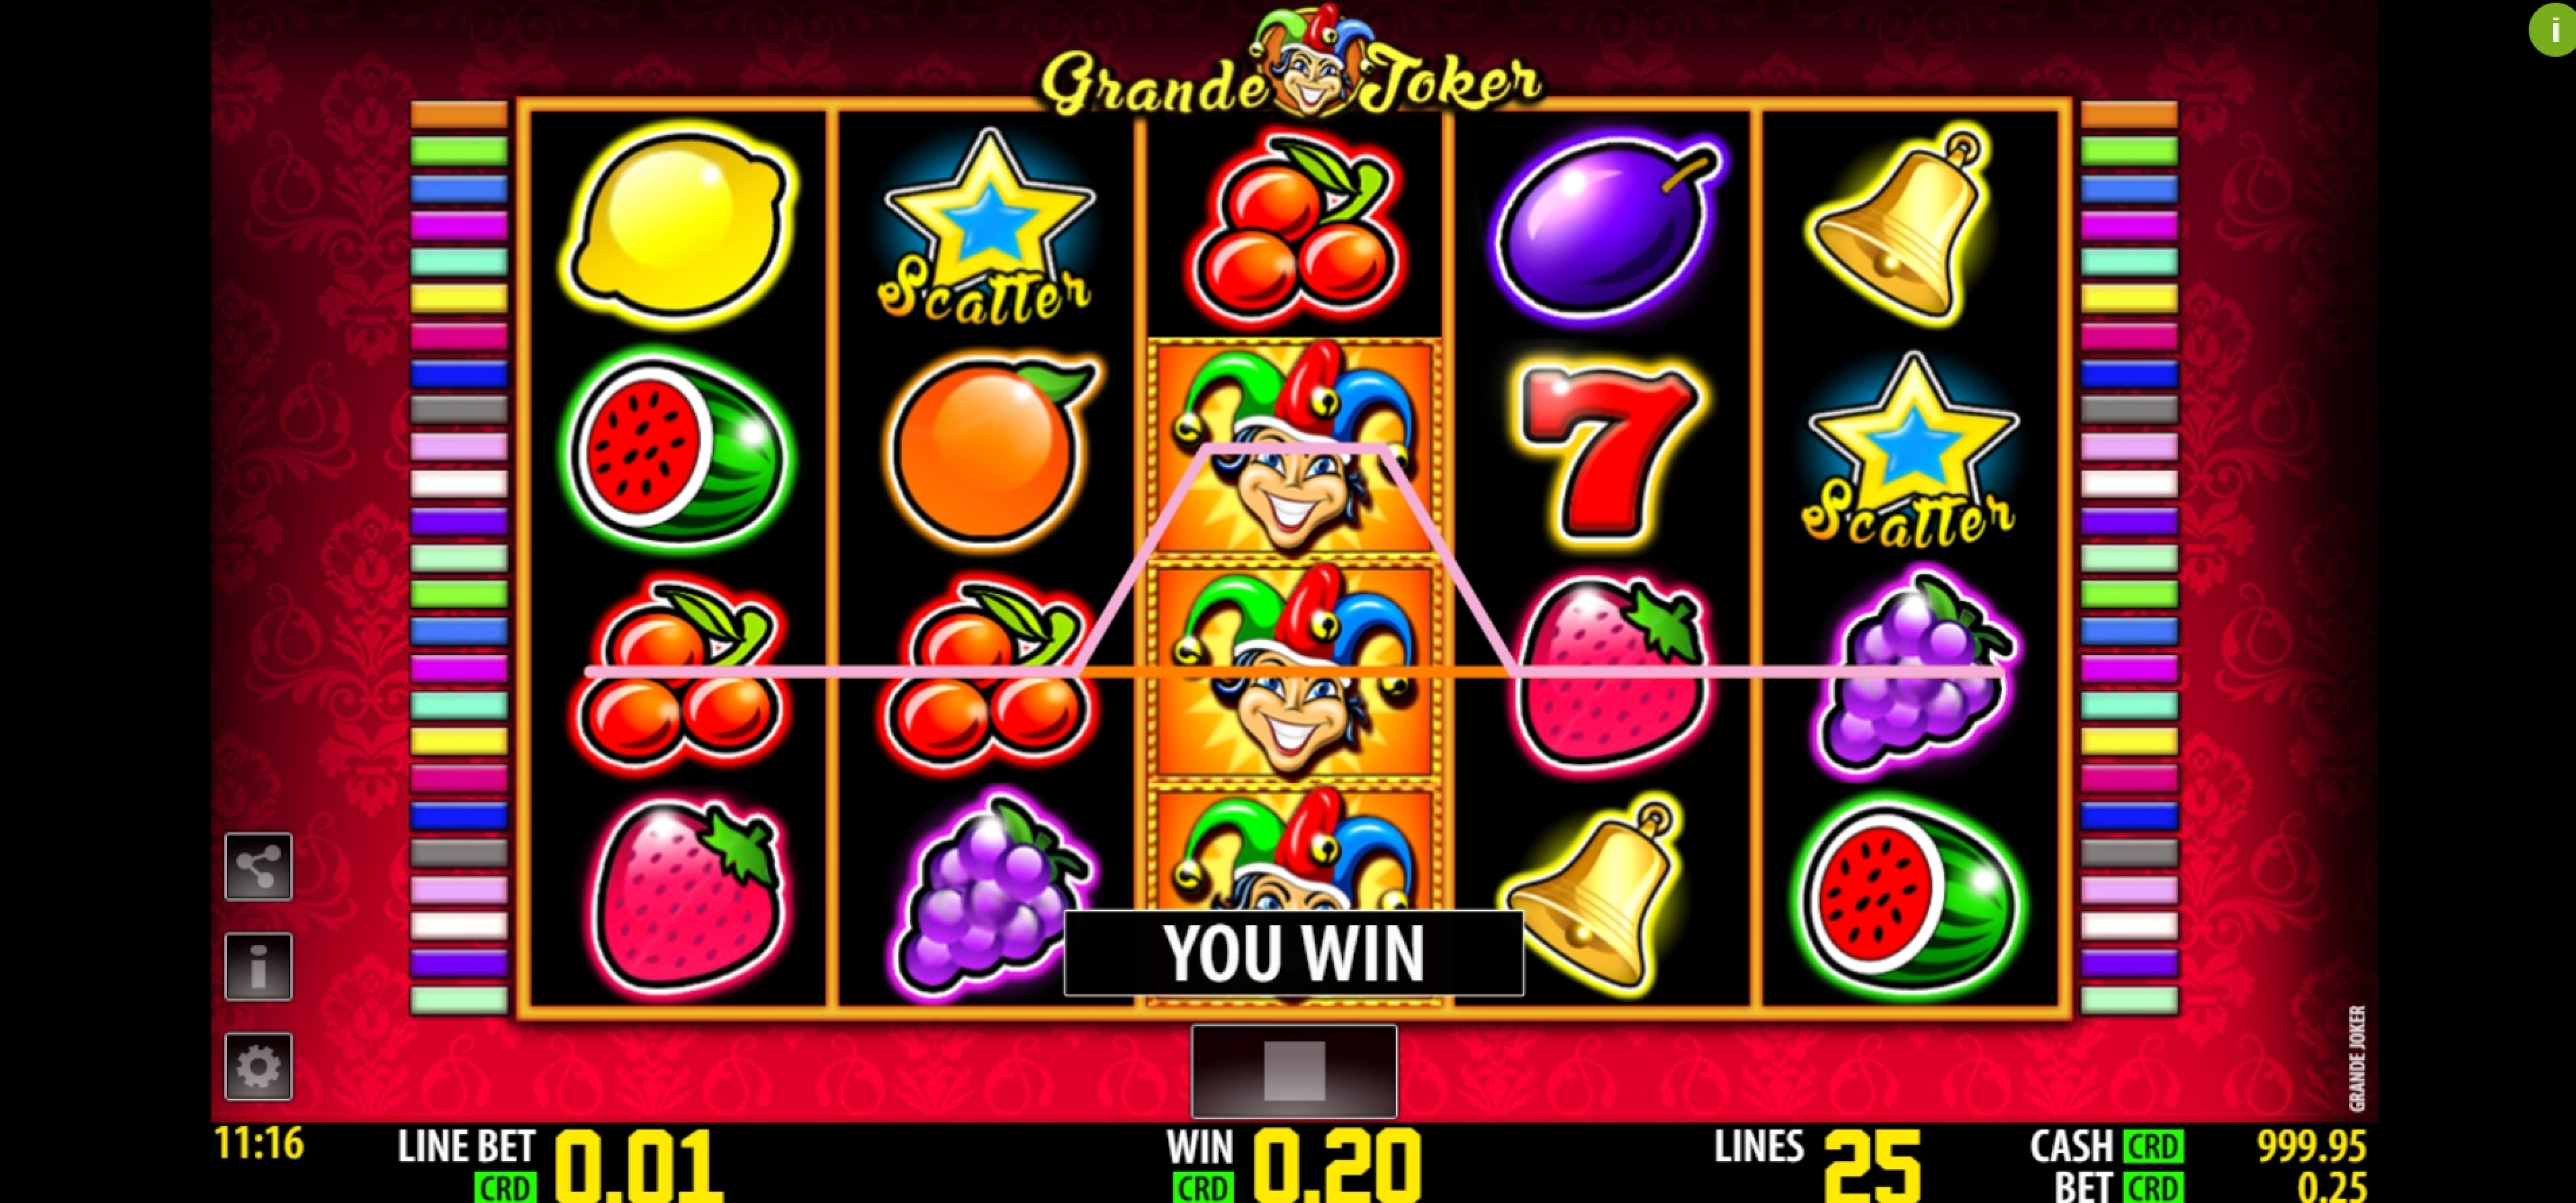 Win Money in Grande Joker Free Slot Game by Nazionale Elettronica